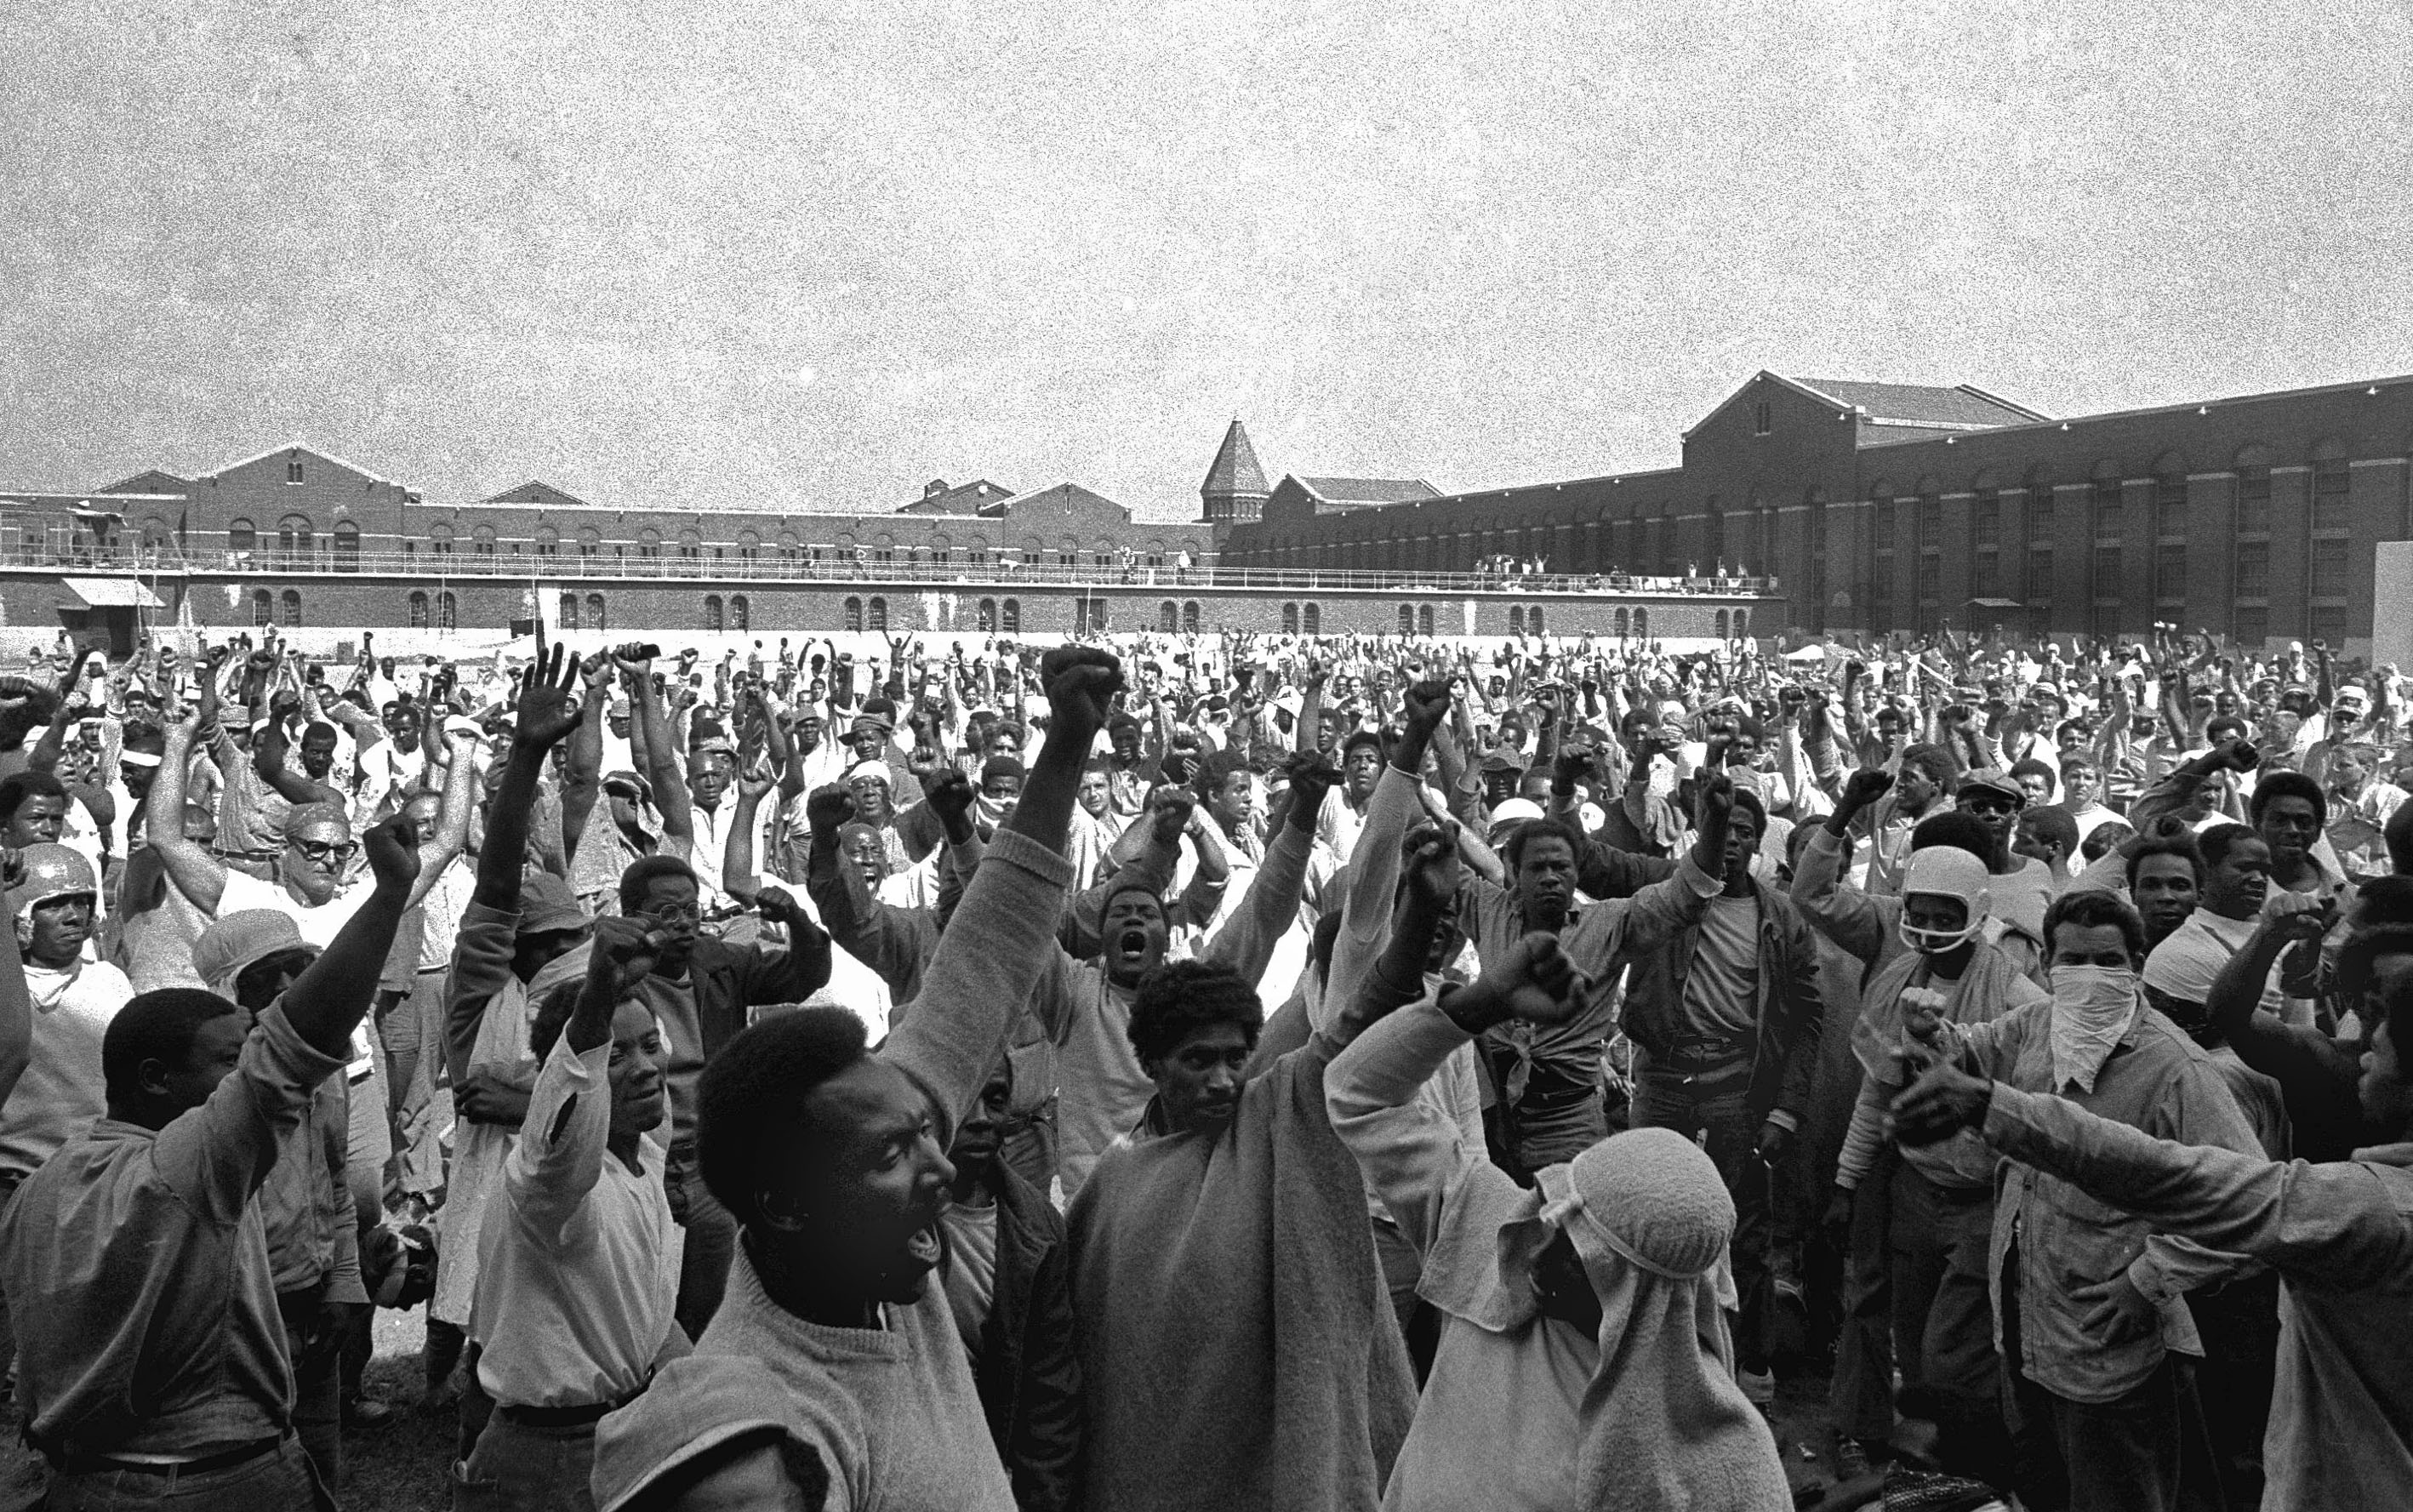 Inmates in a large prison yard raise their fists and yell together.